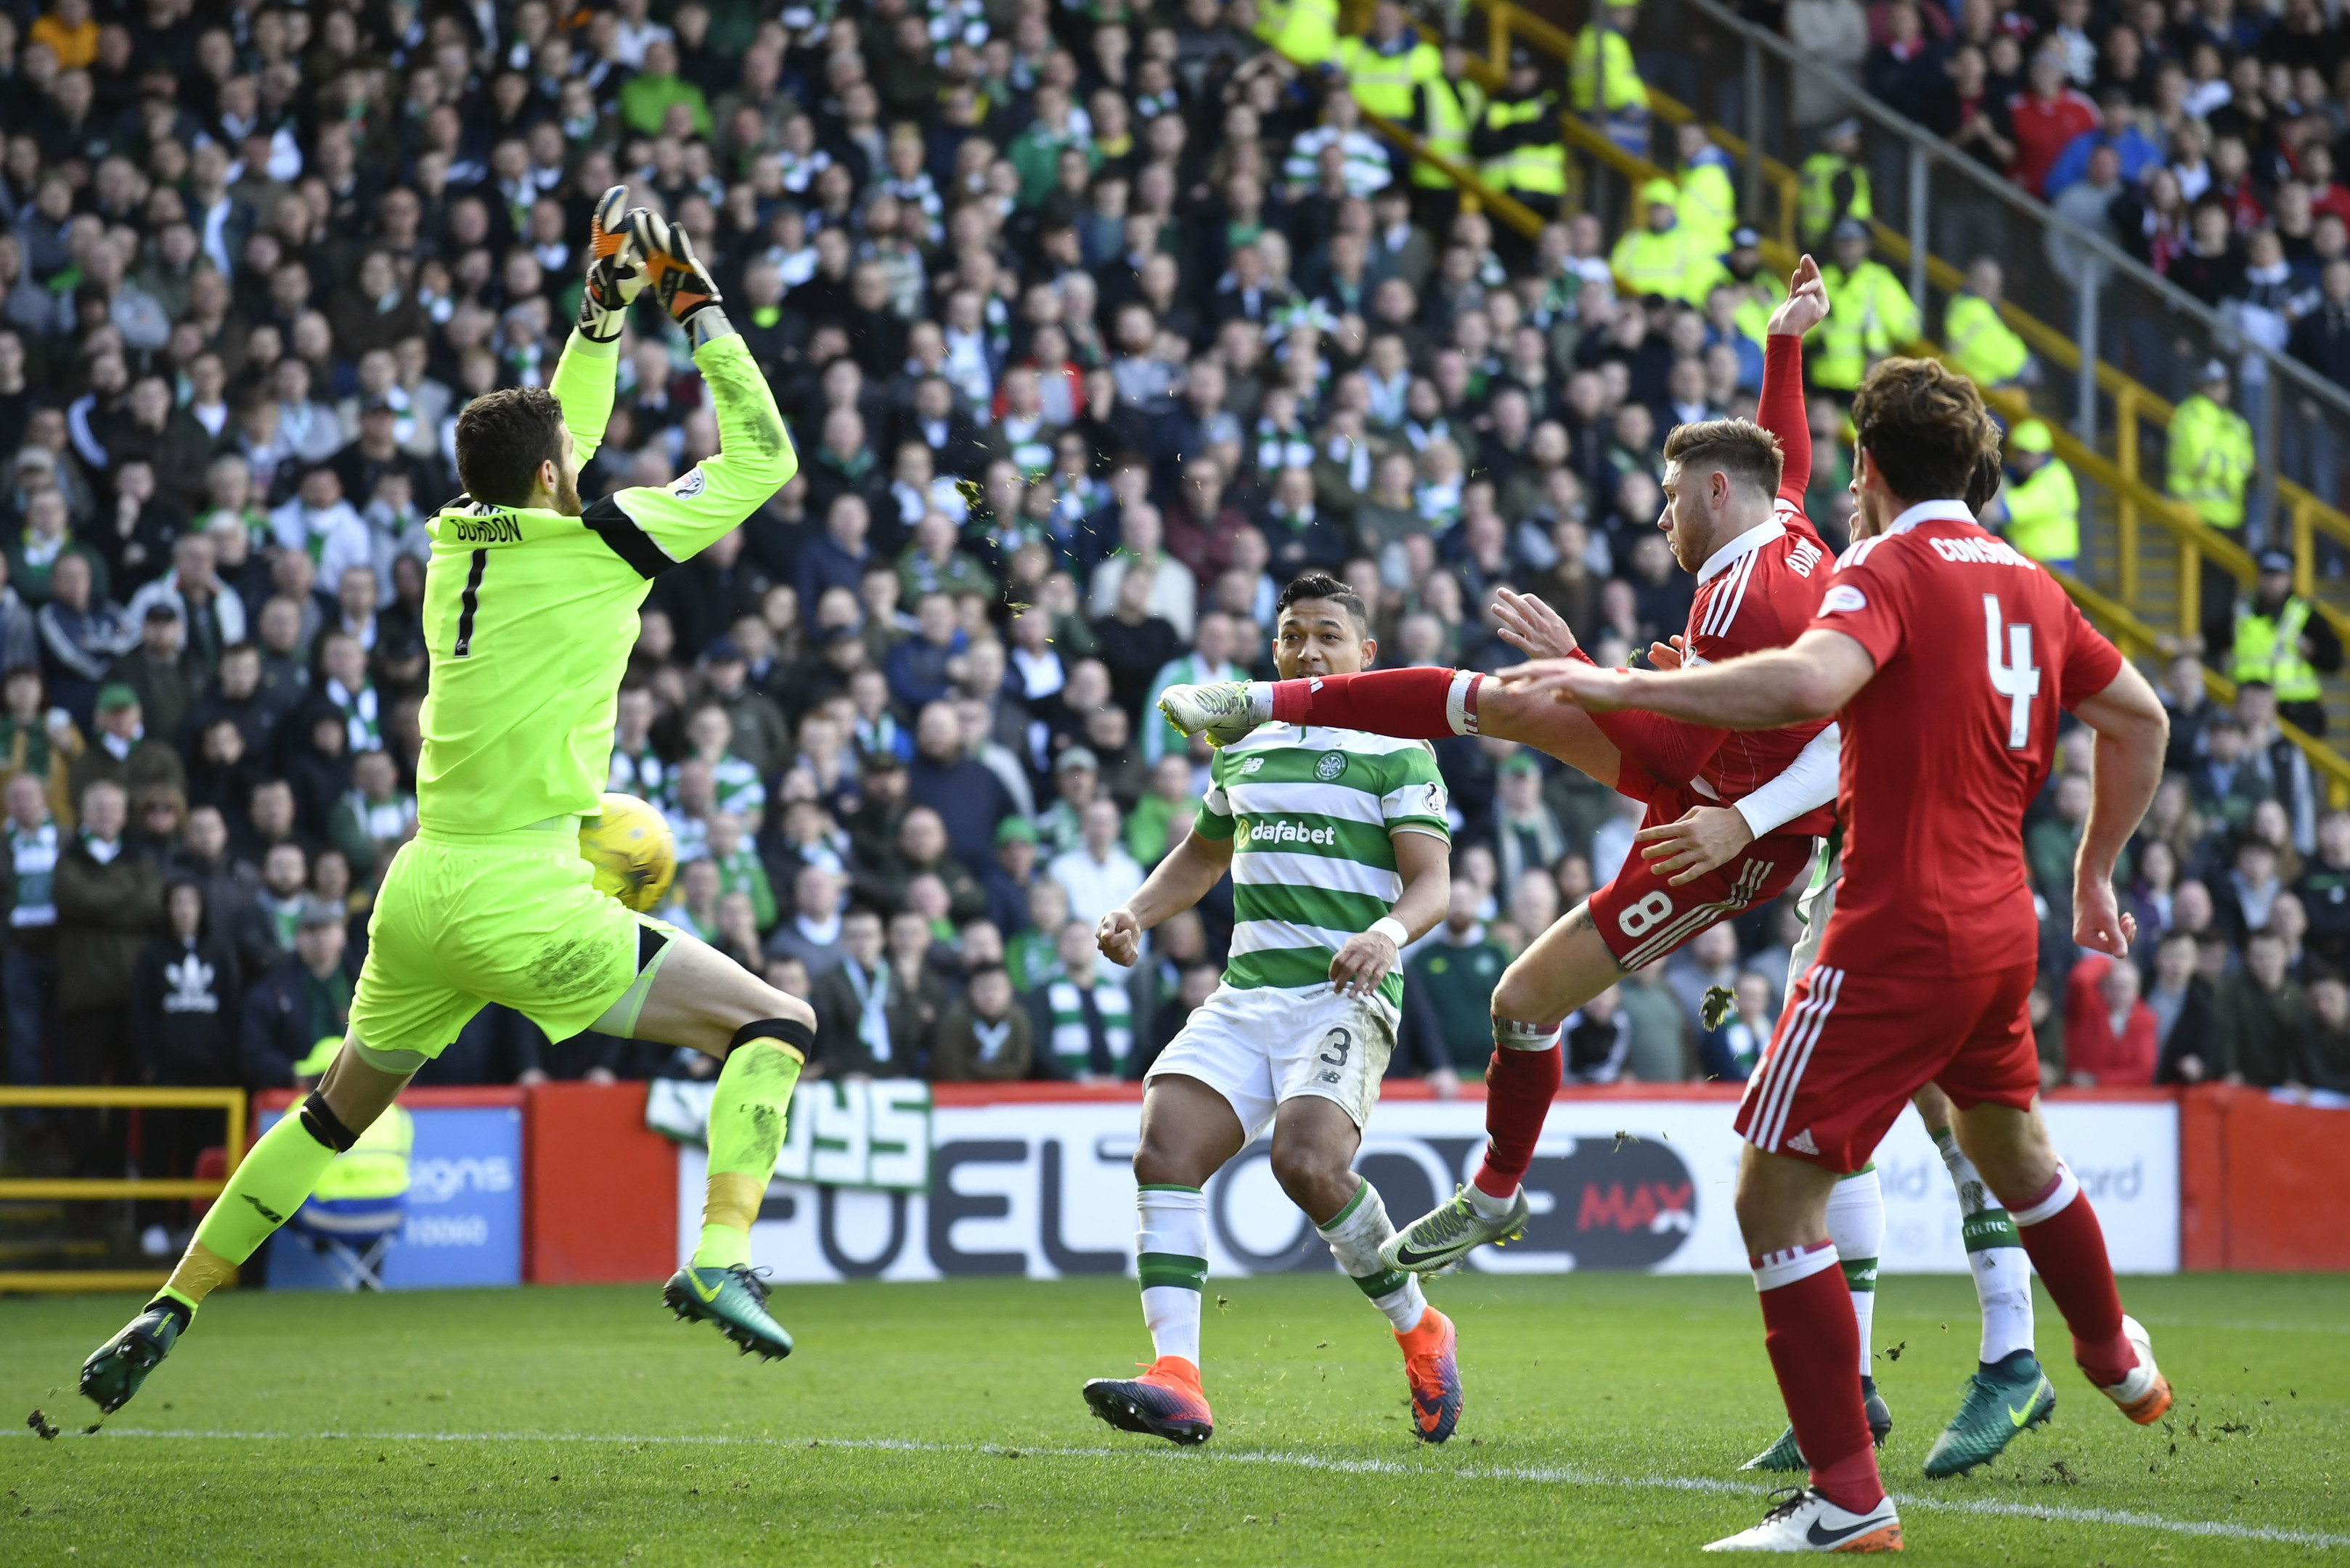 Aberdeen's Wes Burns, second from right, saw this effort saved by Craig Gordon.